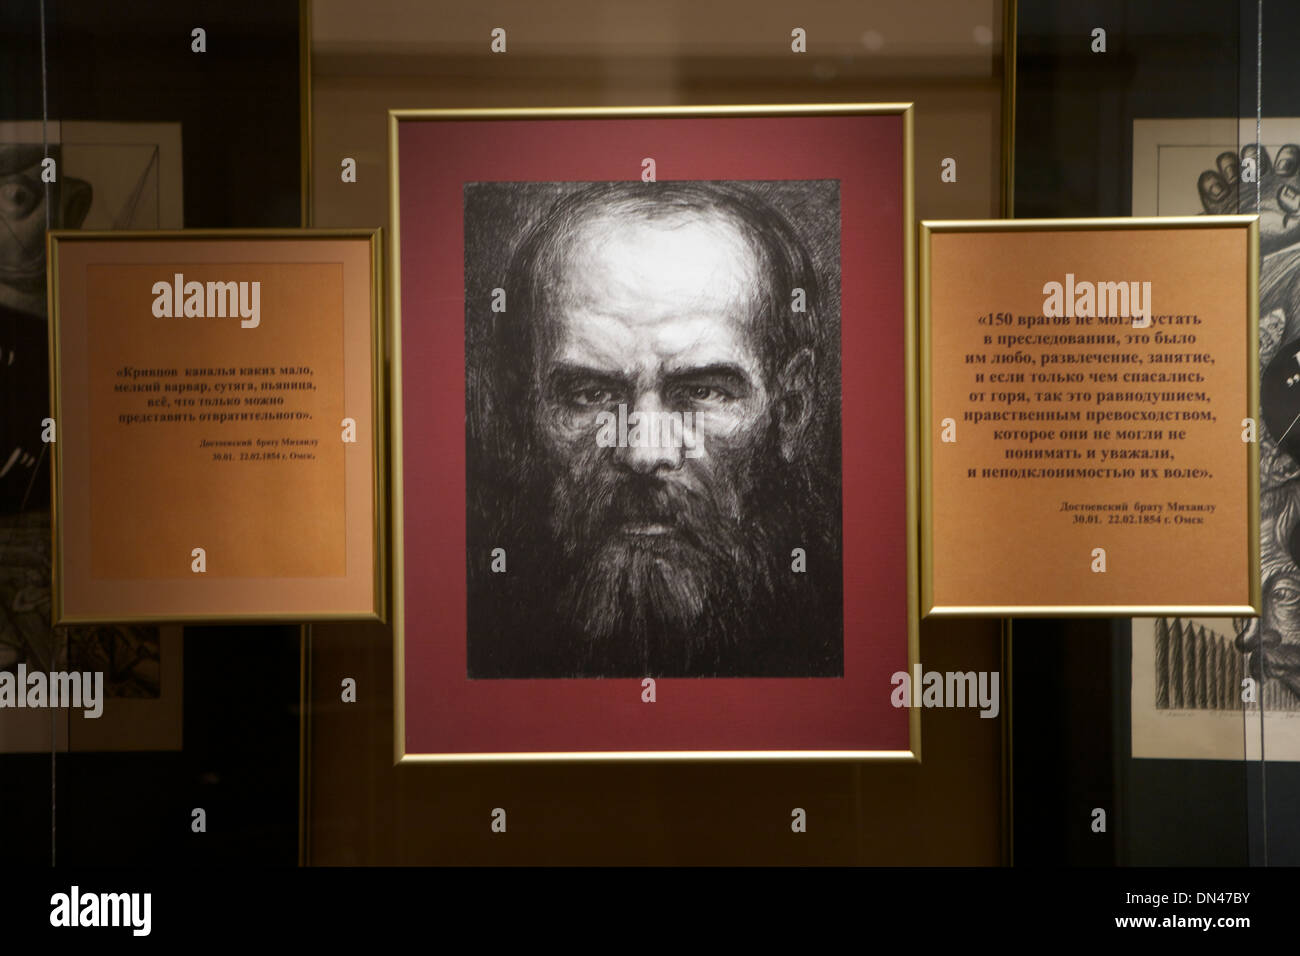 Portrait of Fyodor Dostoyevsky at the museum dedicated to his life in Omsk, Siberia, Russia - Stock Image